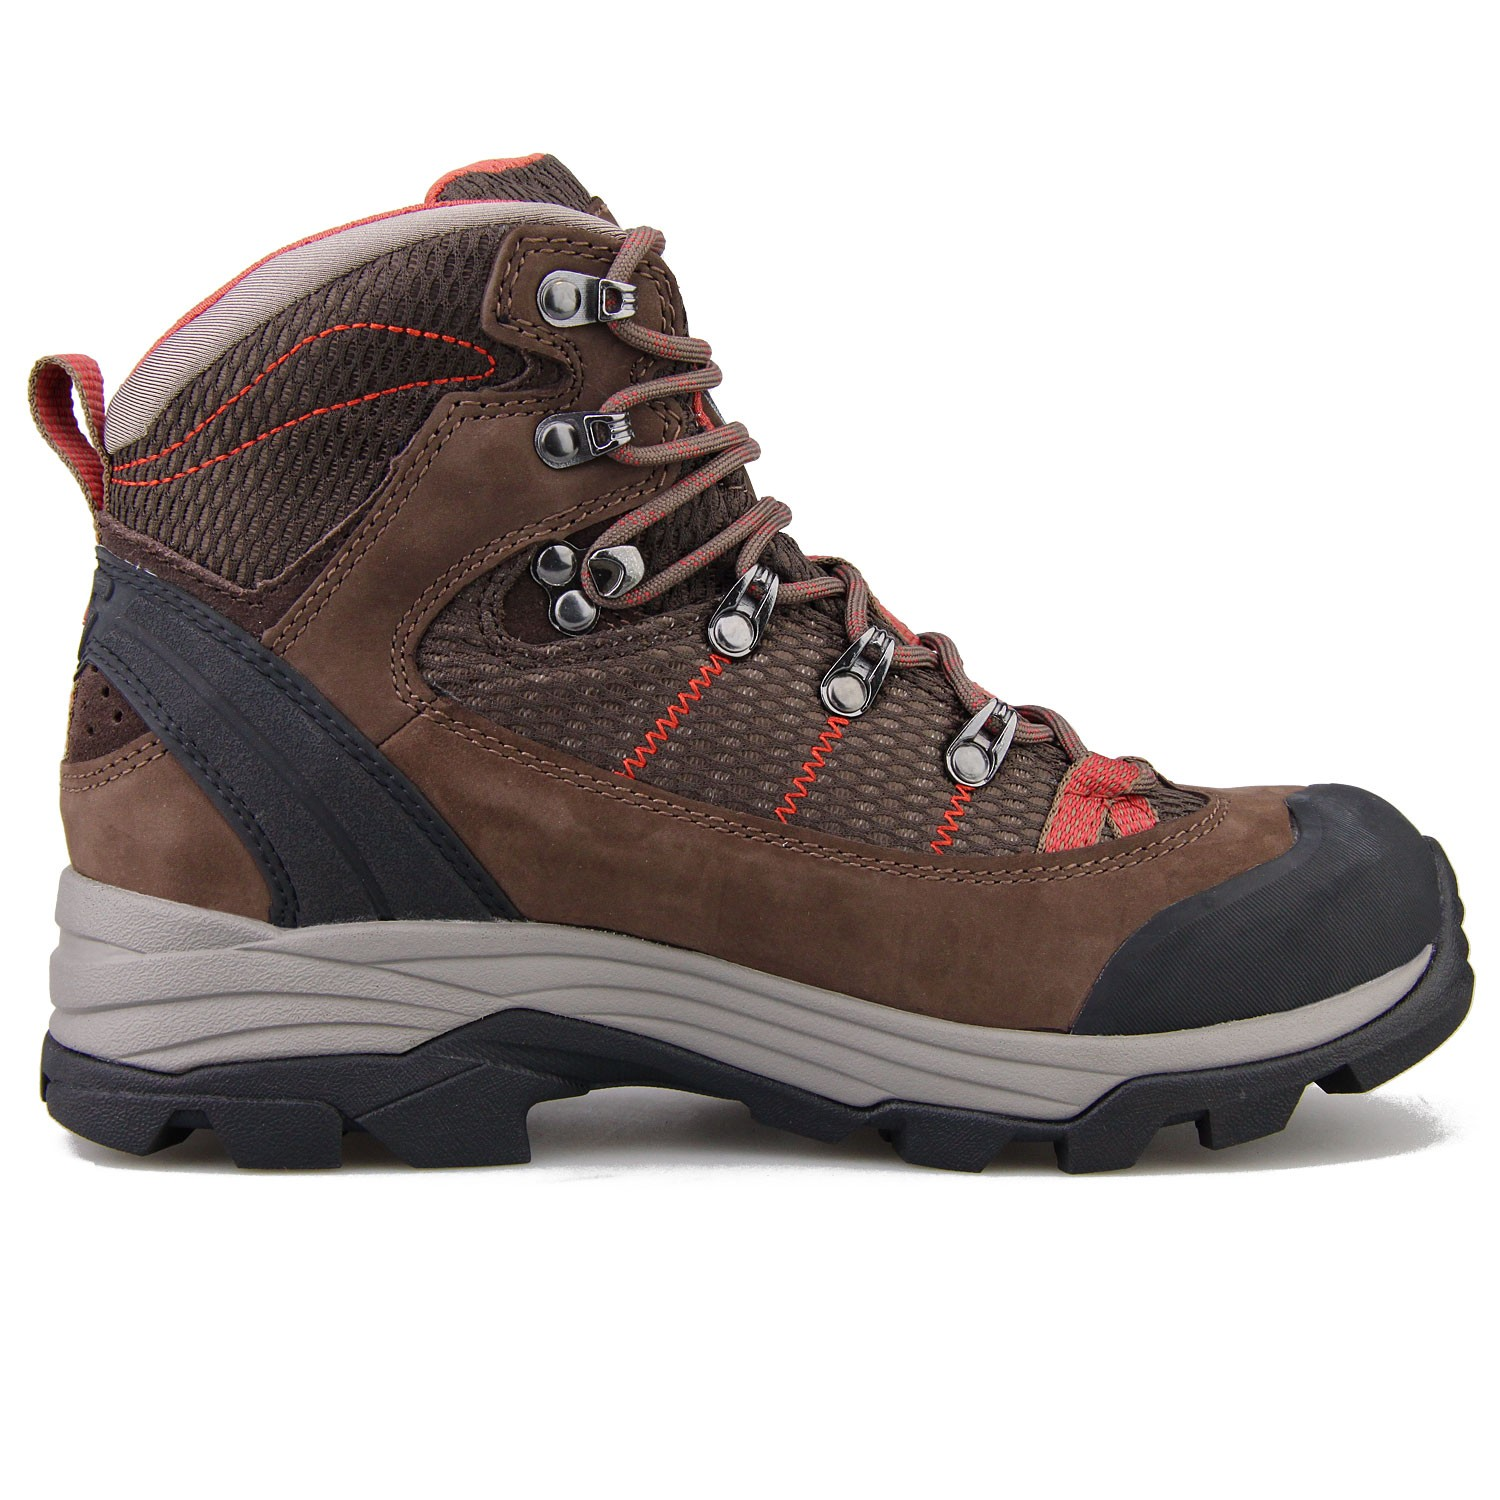 Extra Wide Durable Waterproof Hiking Boots Manufacturers, Extra Wide Durable Waterproof Hiking Boots Factory, Supply Extra Wide Durable Waterproof Hiking Boots